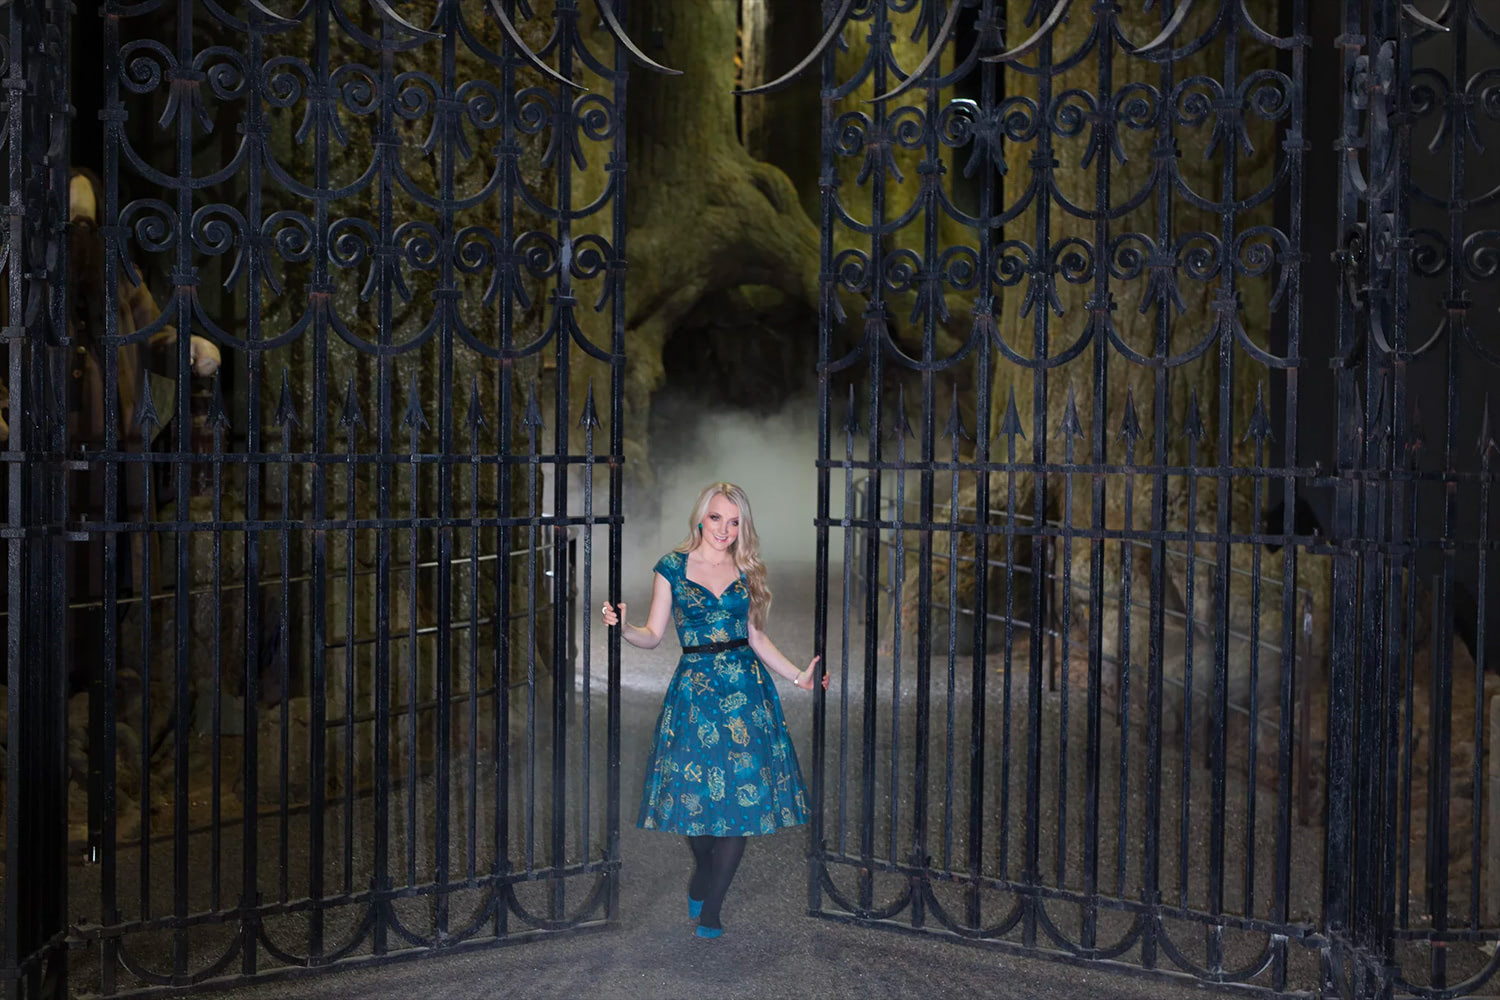 Evanna Lynch at the Forbidden Forest expansion